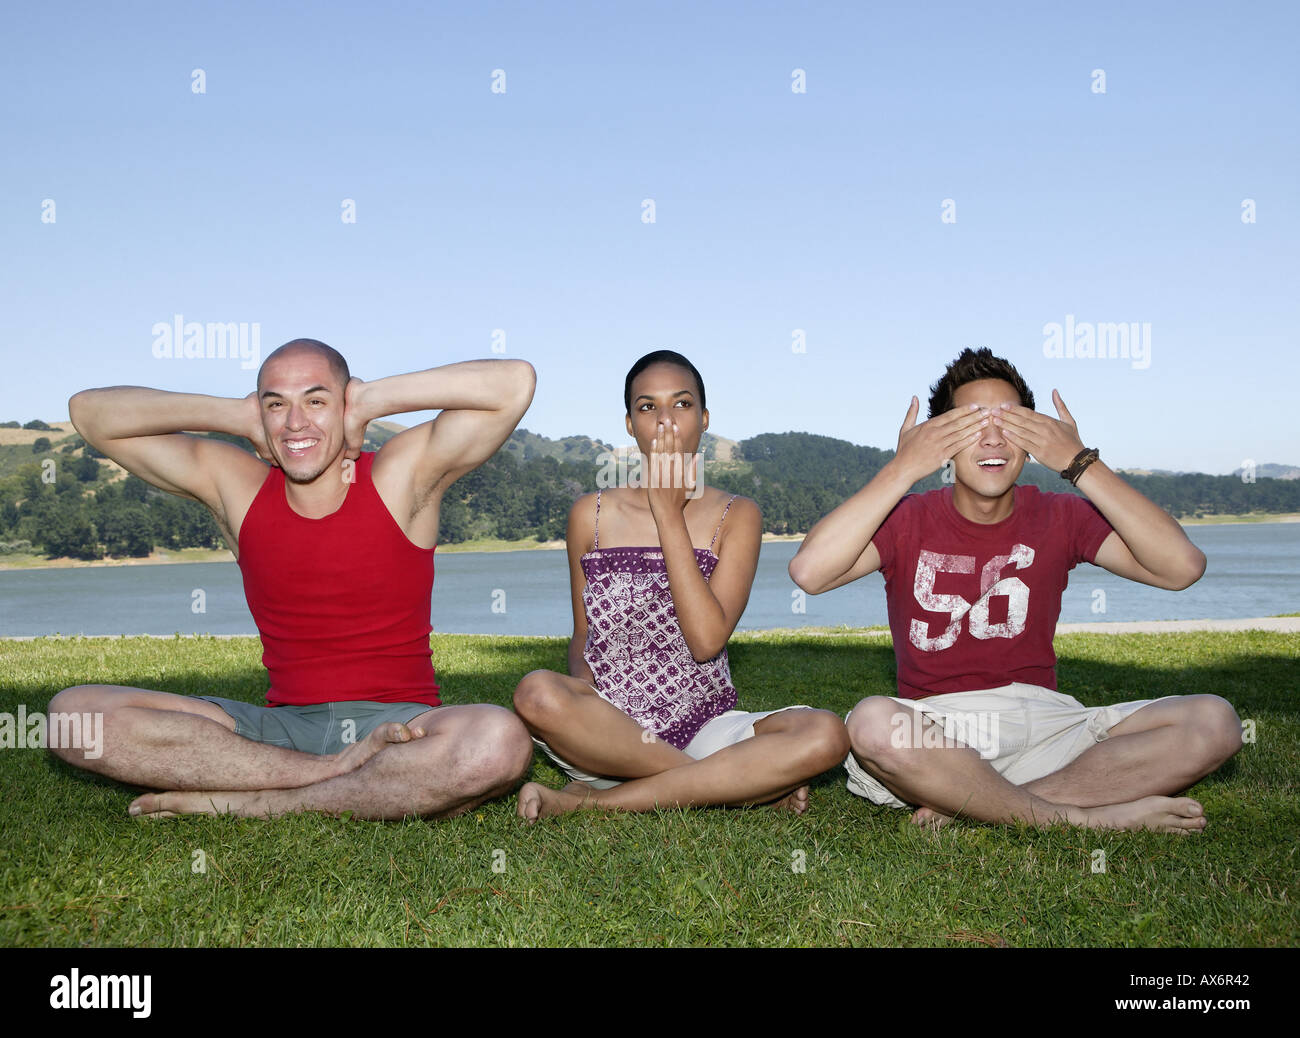 Friends in different poses - Stock Image